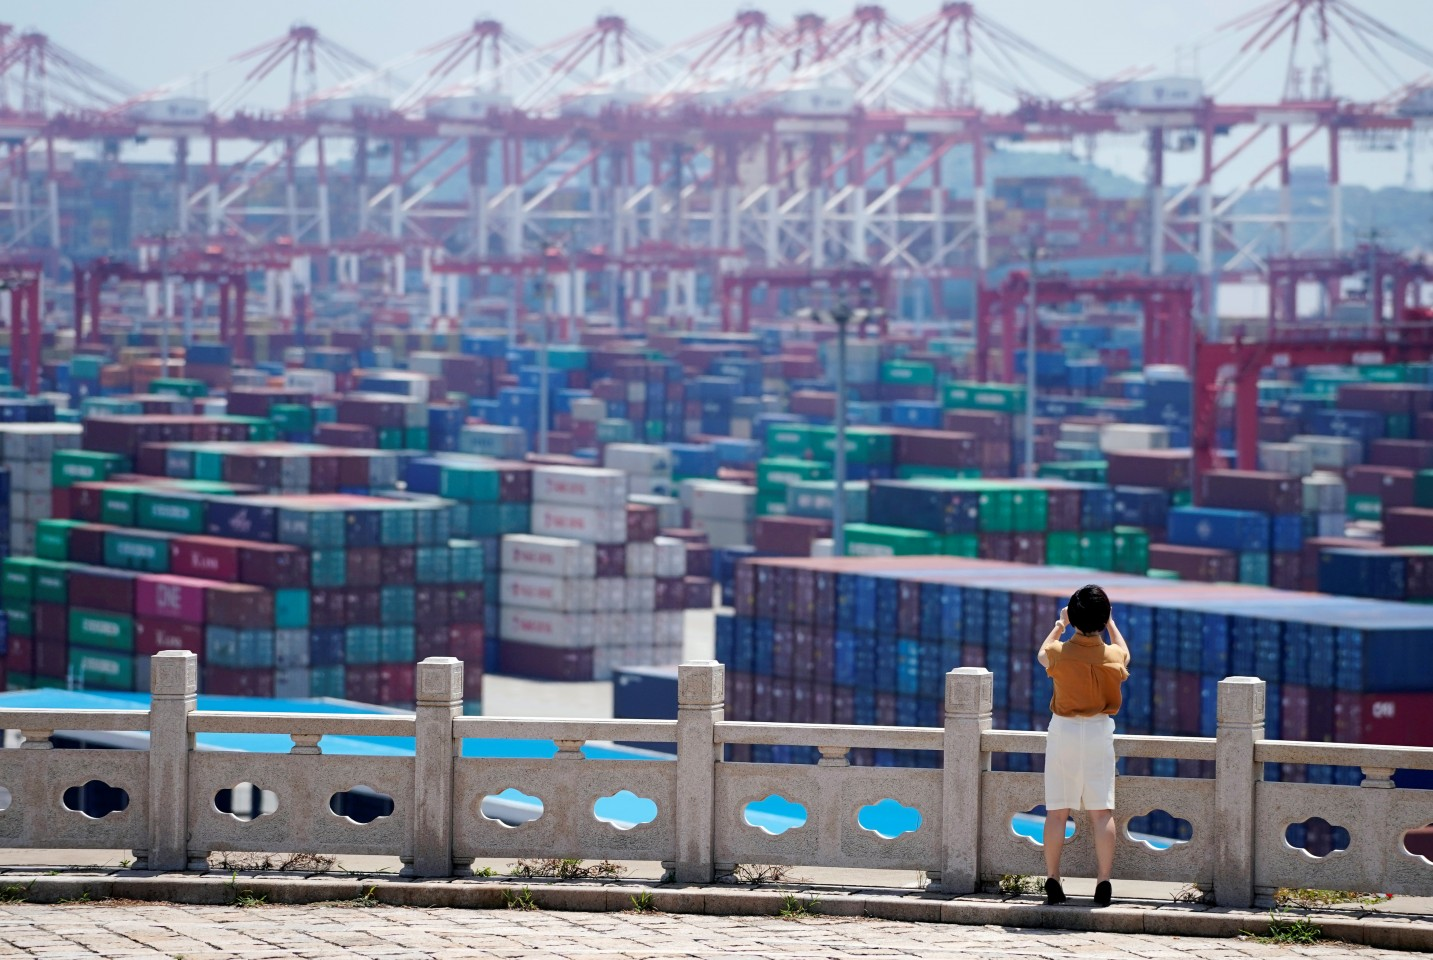 China has developed in a globalised world and reaped huge benefits in the process, driven by the country's economic reforms and its people's efforts. The picture shows containers at the Yangshan Deep Water Port in Shanghai, China, August 6, 2019. (Aly Song/File Photo/Reuters)